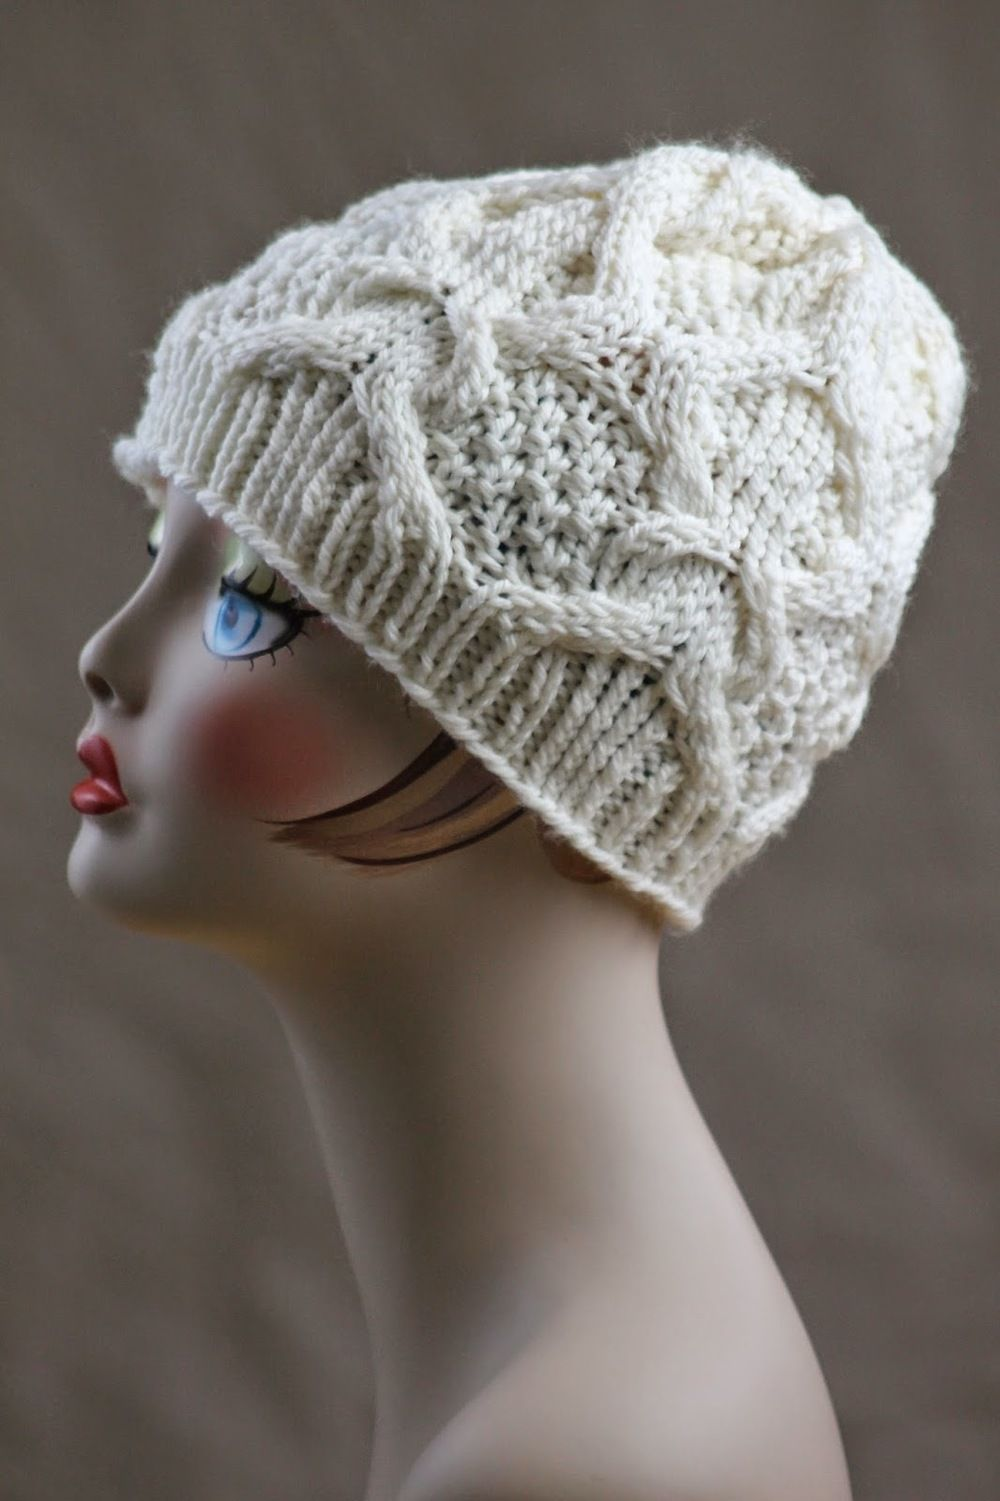 how to finish knitting a hat without double pointed needles